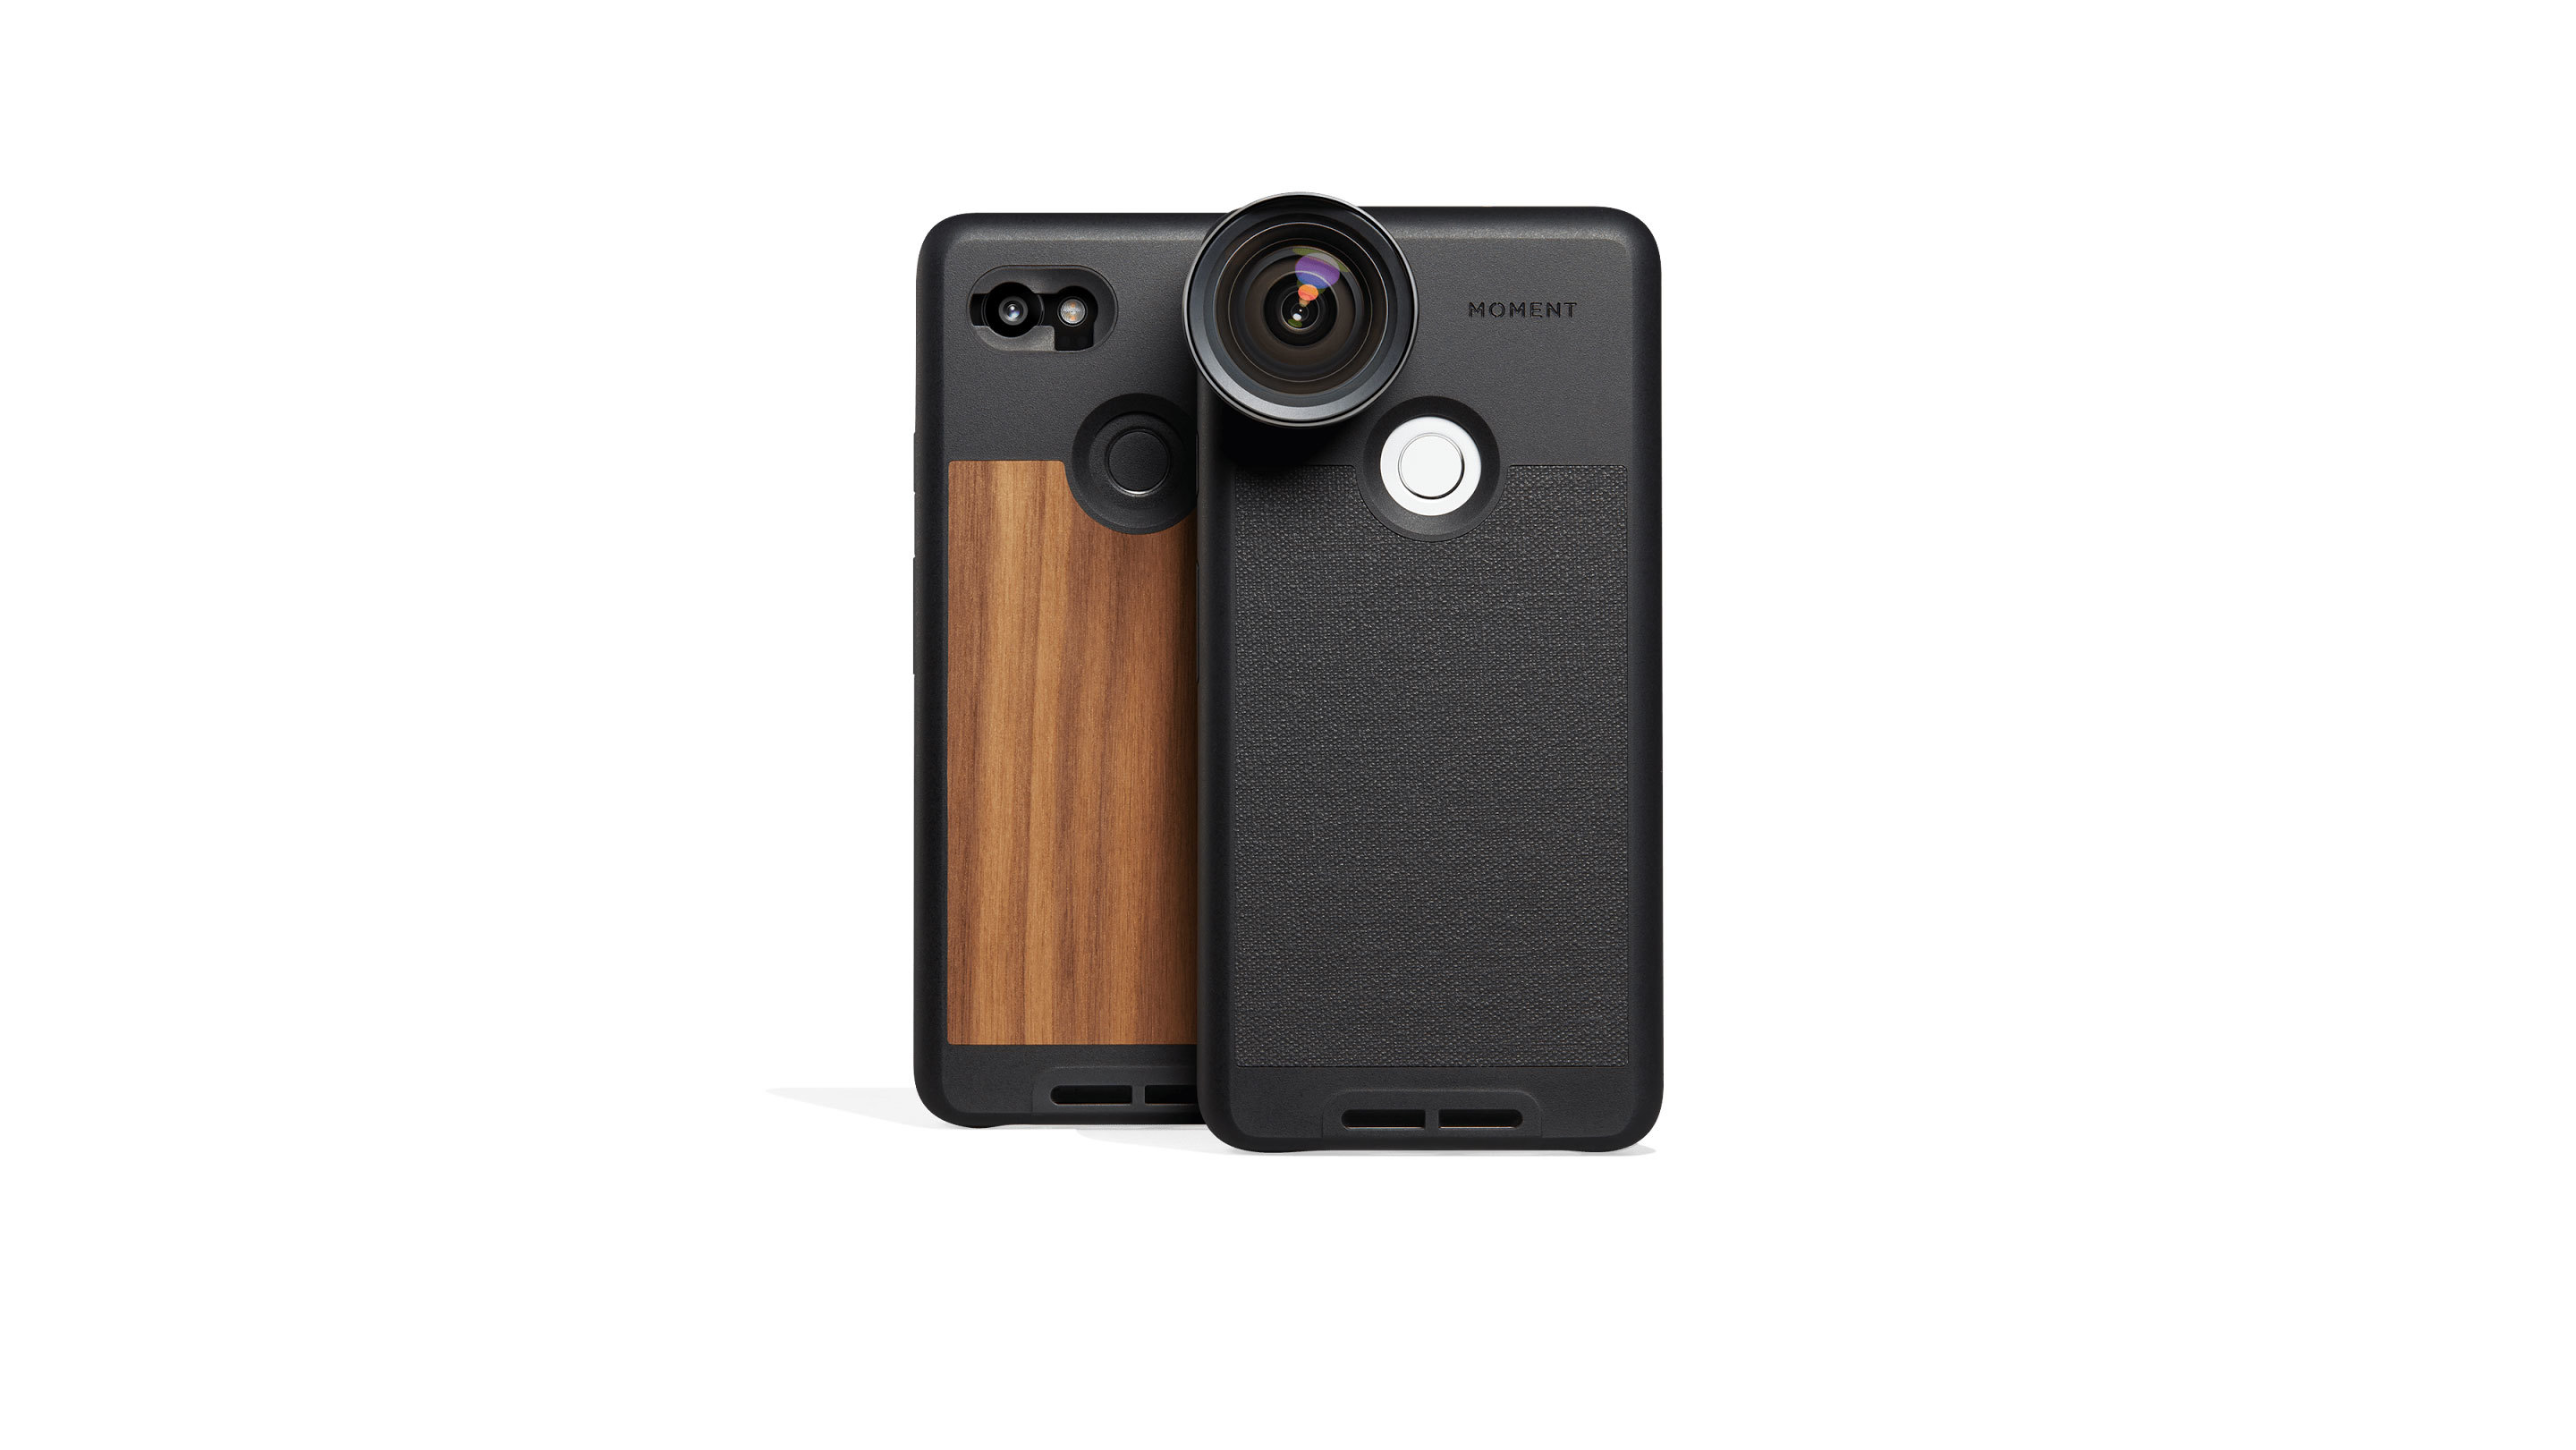 newest 8635d 2cb7f Moment Photo Case & Lens for Pixel 2, iPhone X, iPhone 7 and 8 Plus ...